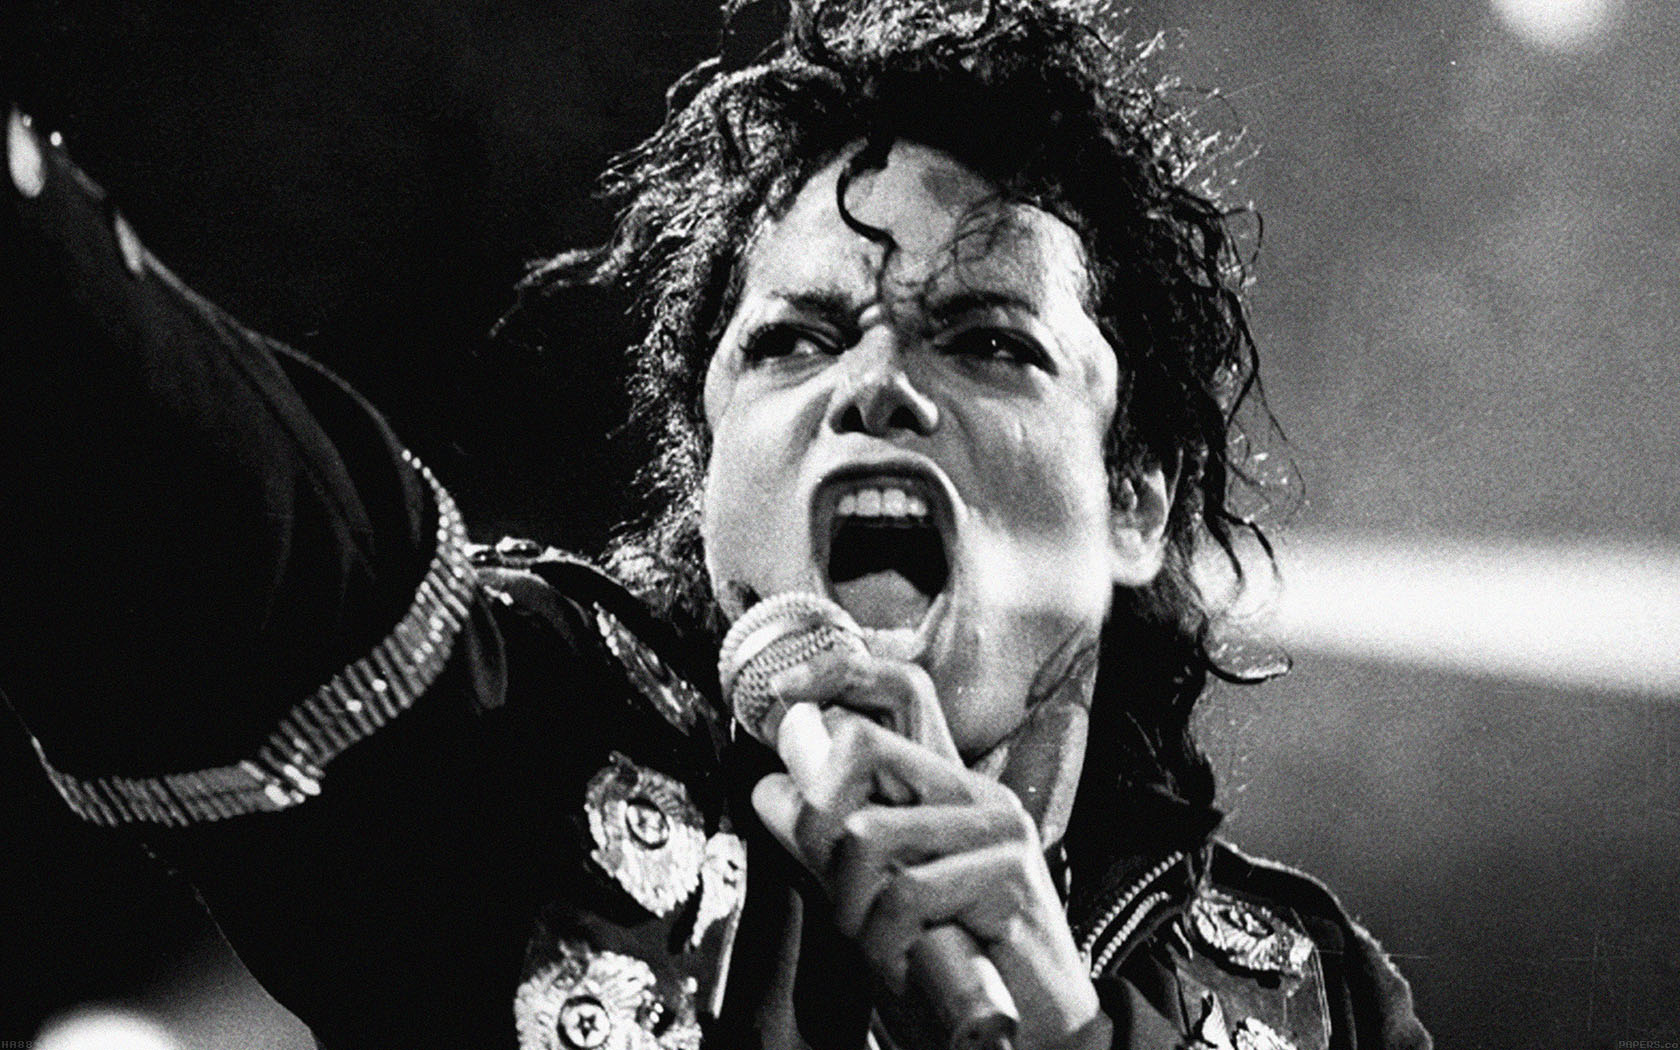 Hd Live Wallpapers For Iphone 7 Ha88 Wallpaper Michael Jackson Sing Music Face Papers Co